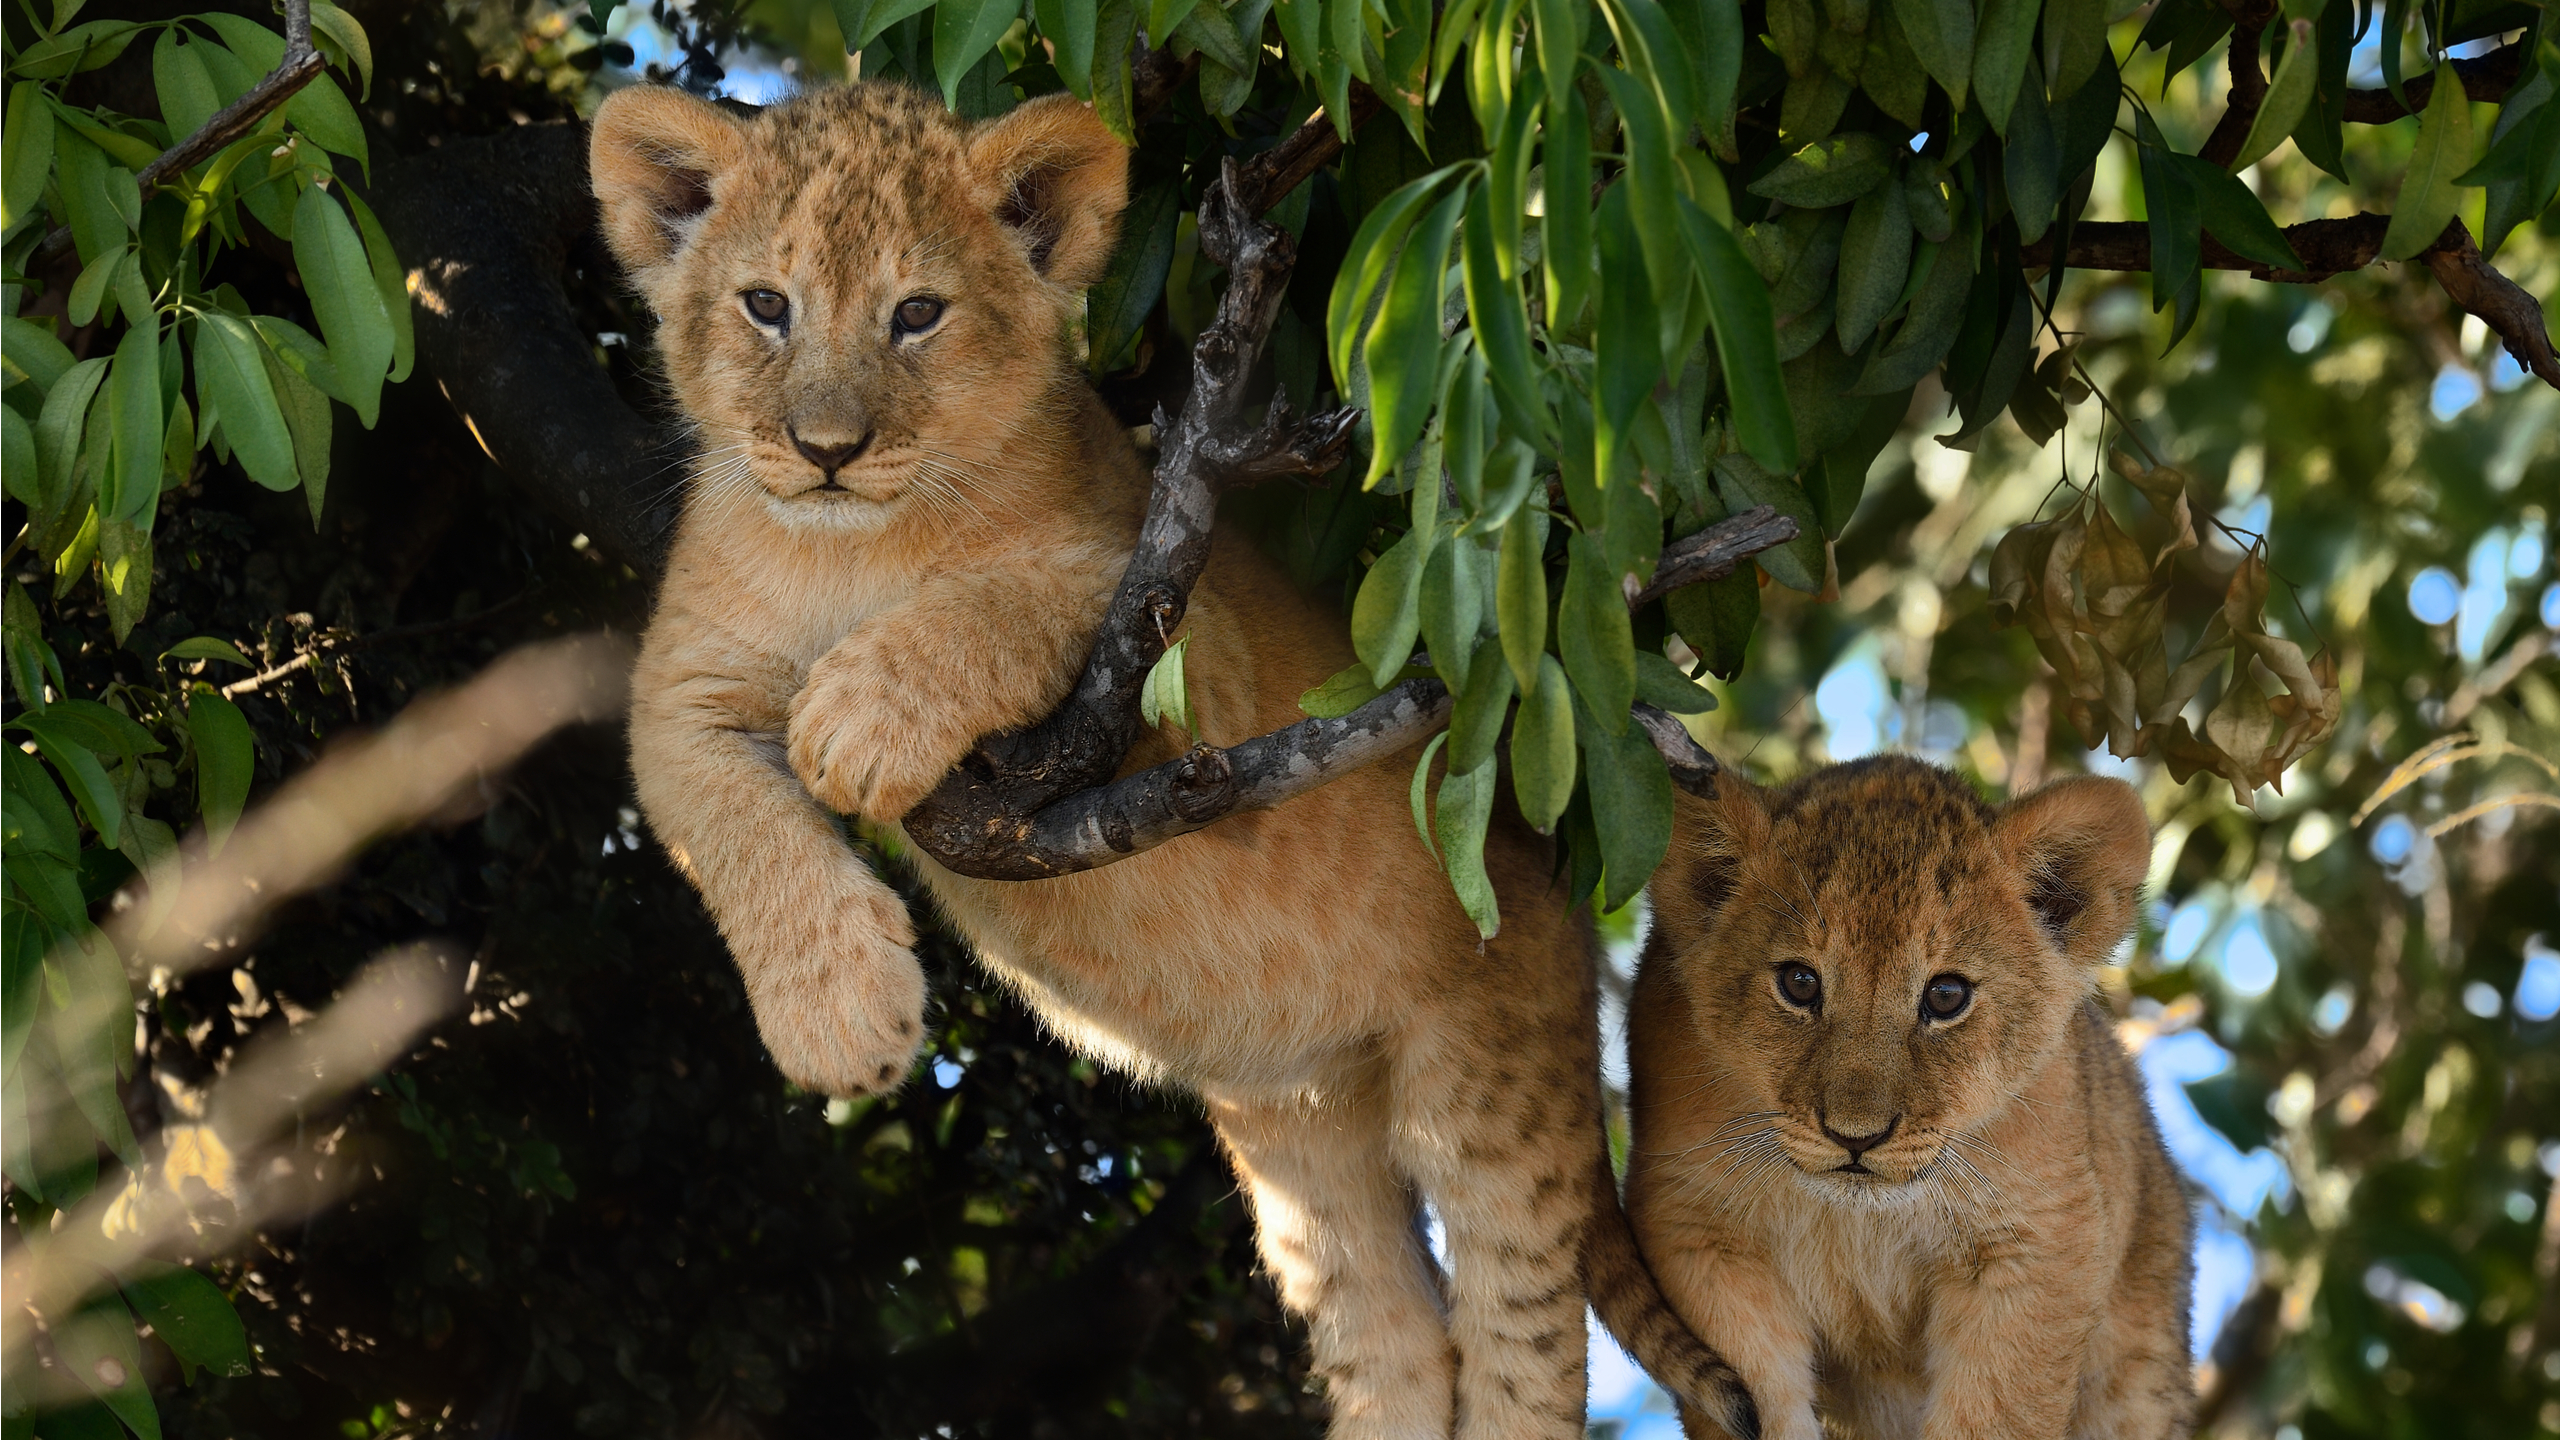 Lion cubs can sometimes be found in trees in East Africa. © Shutterstock